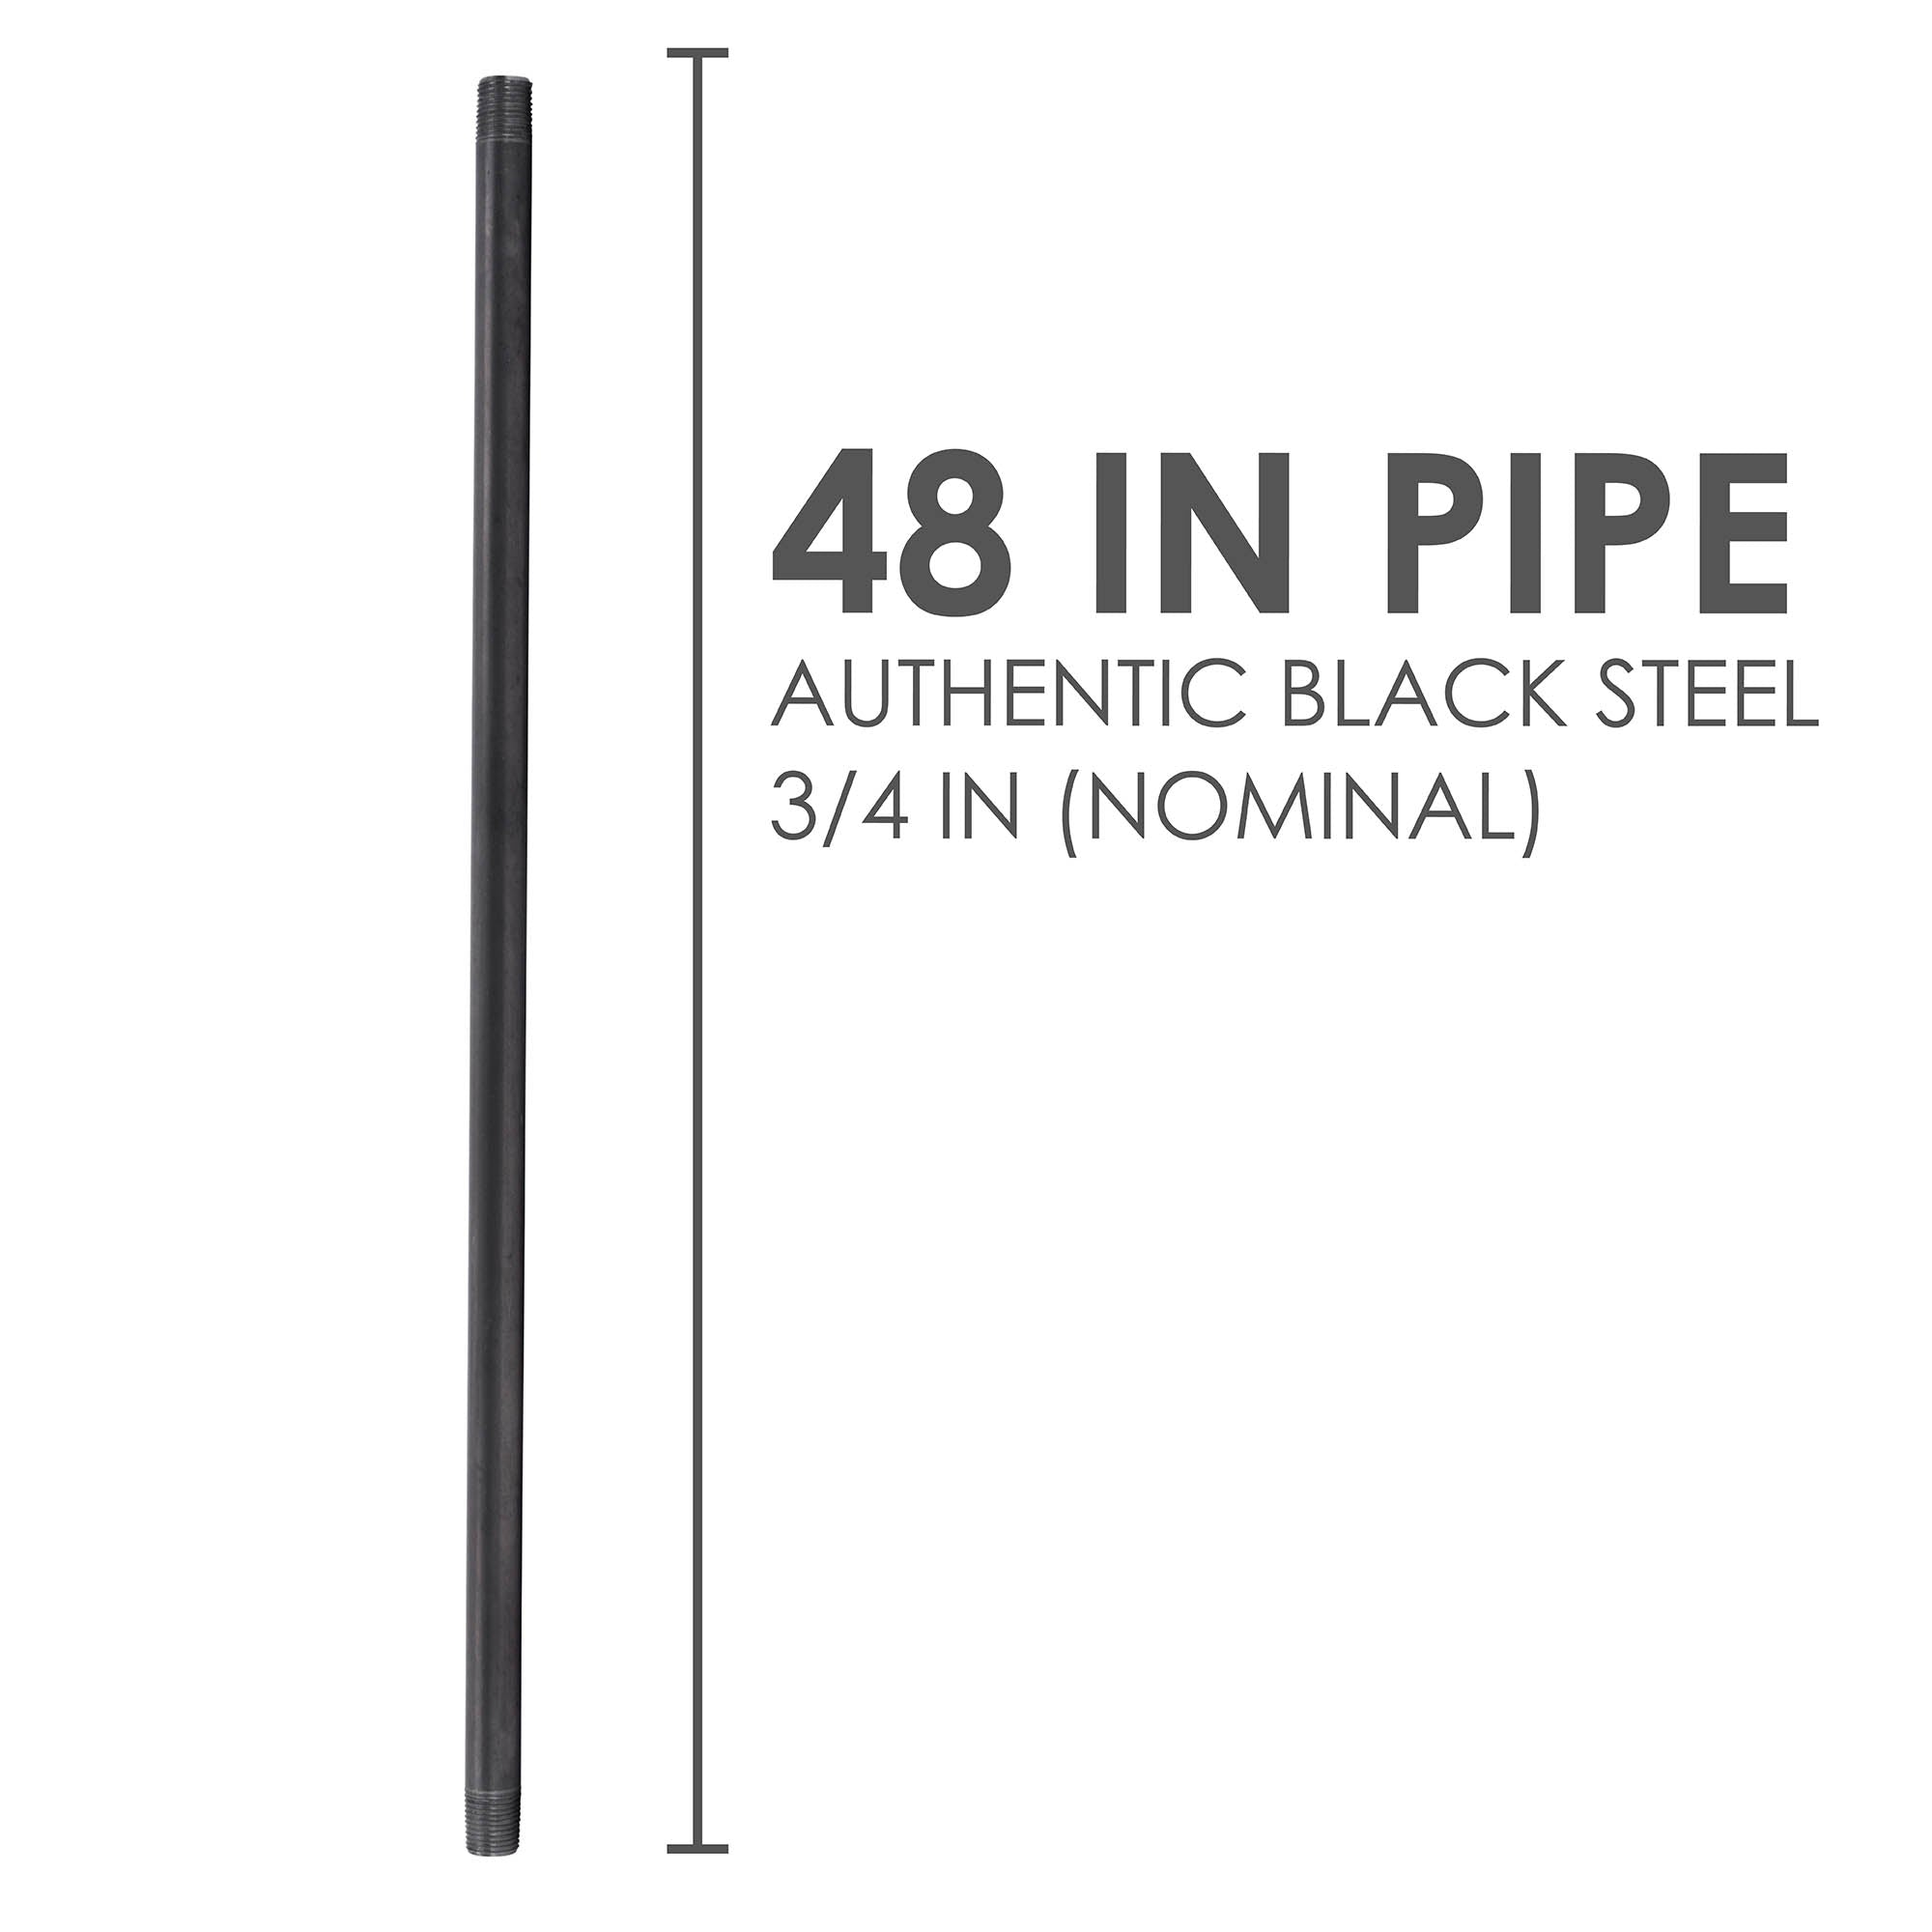 3/4 In X 48 In Black Pipe - Pipe Decor